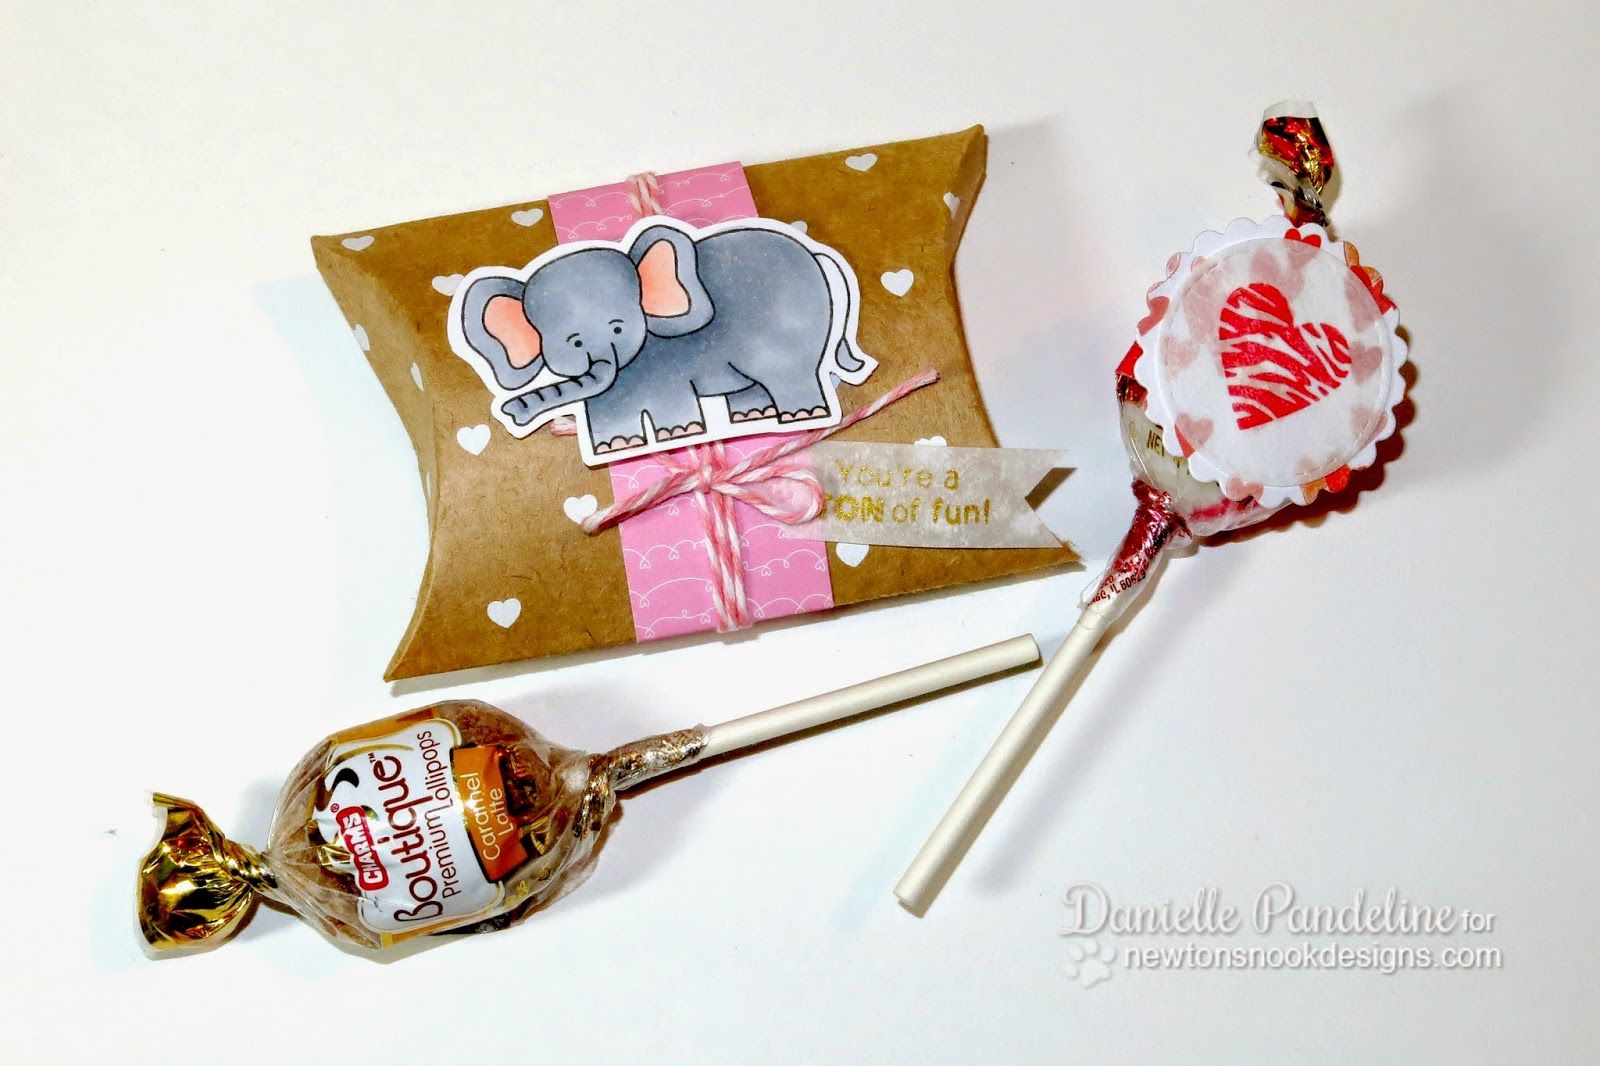 Sweet Treats by Danielle Pandeline | featuring Newton's Nook Designs